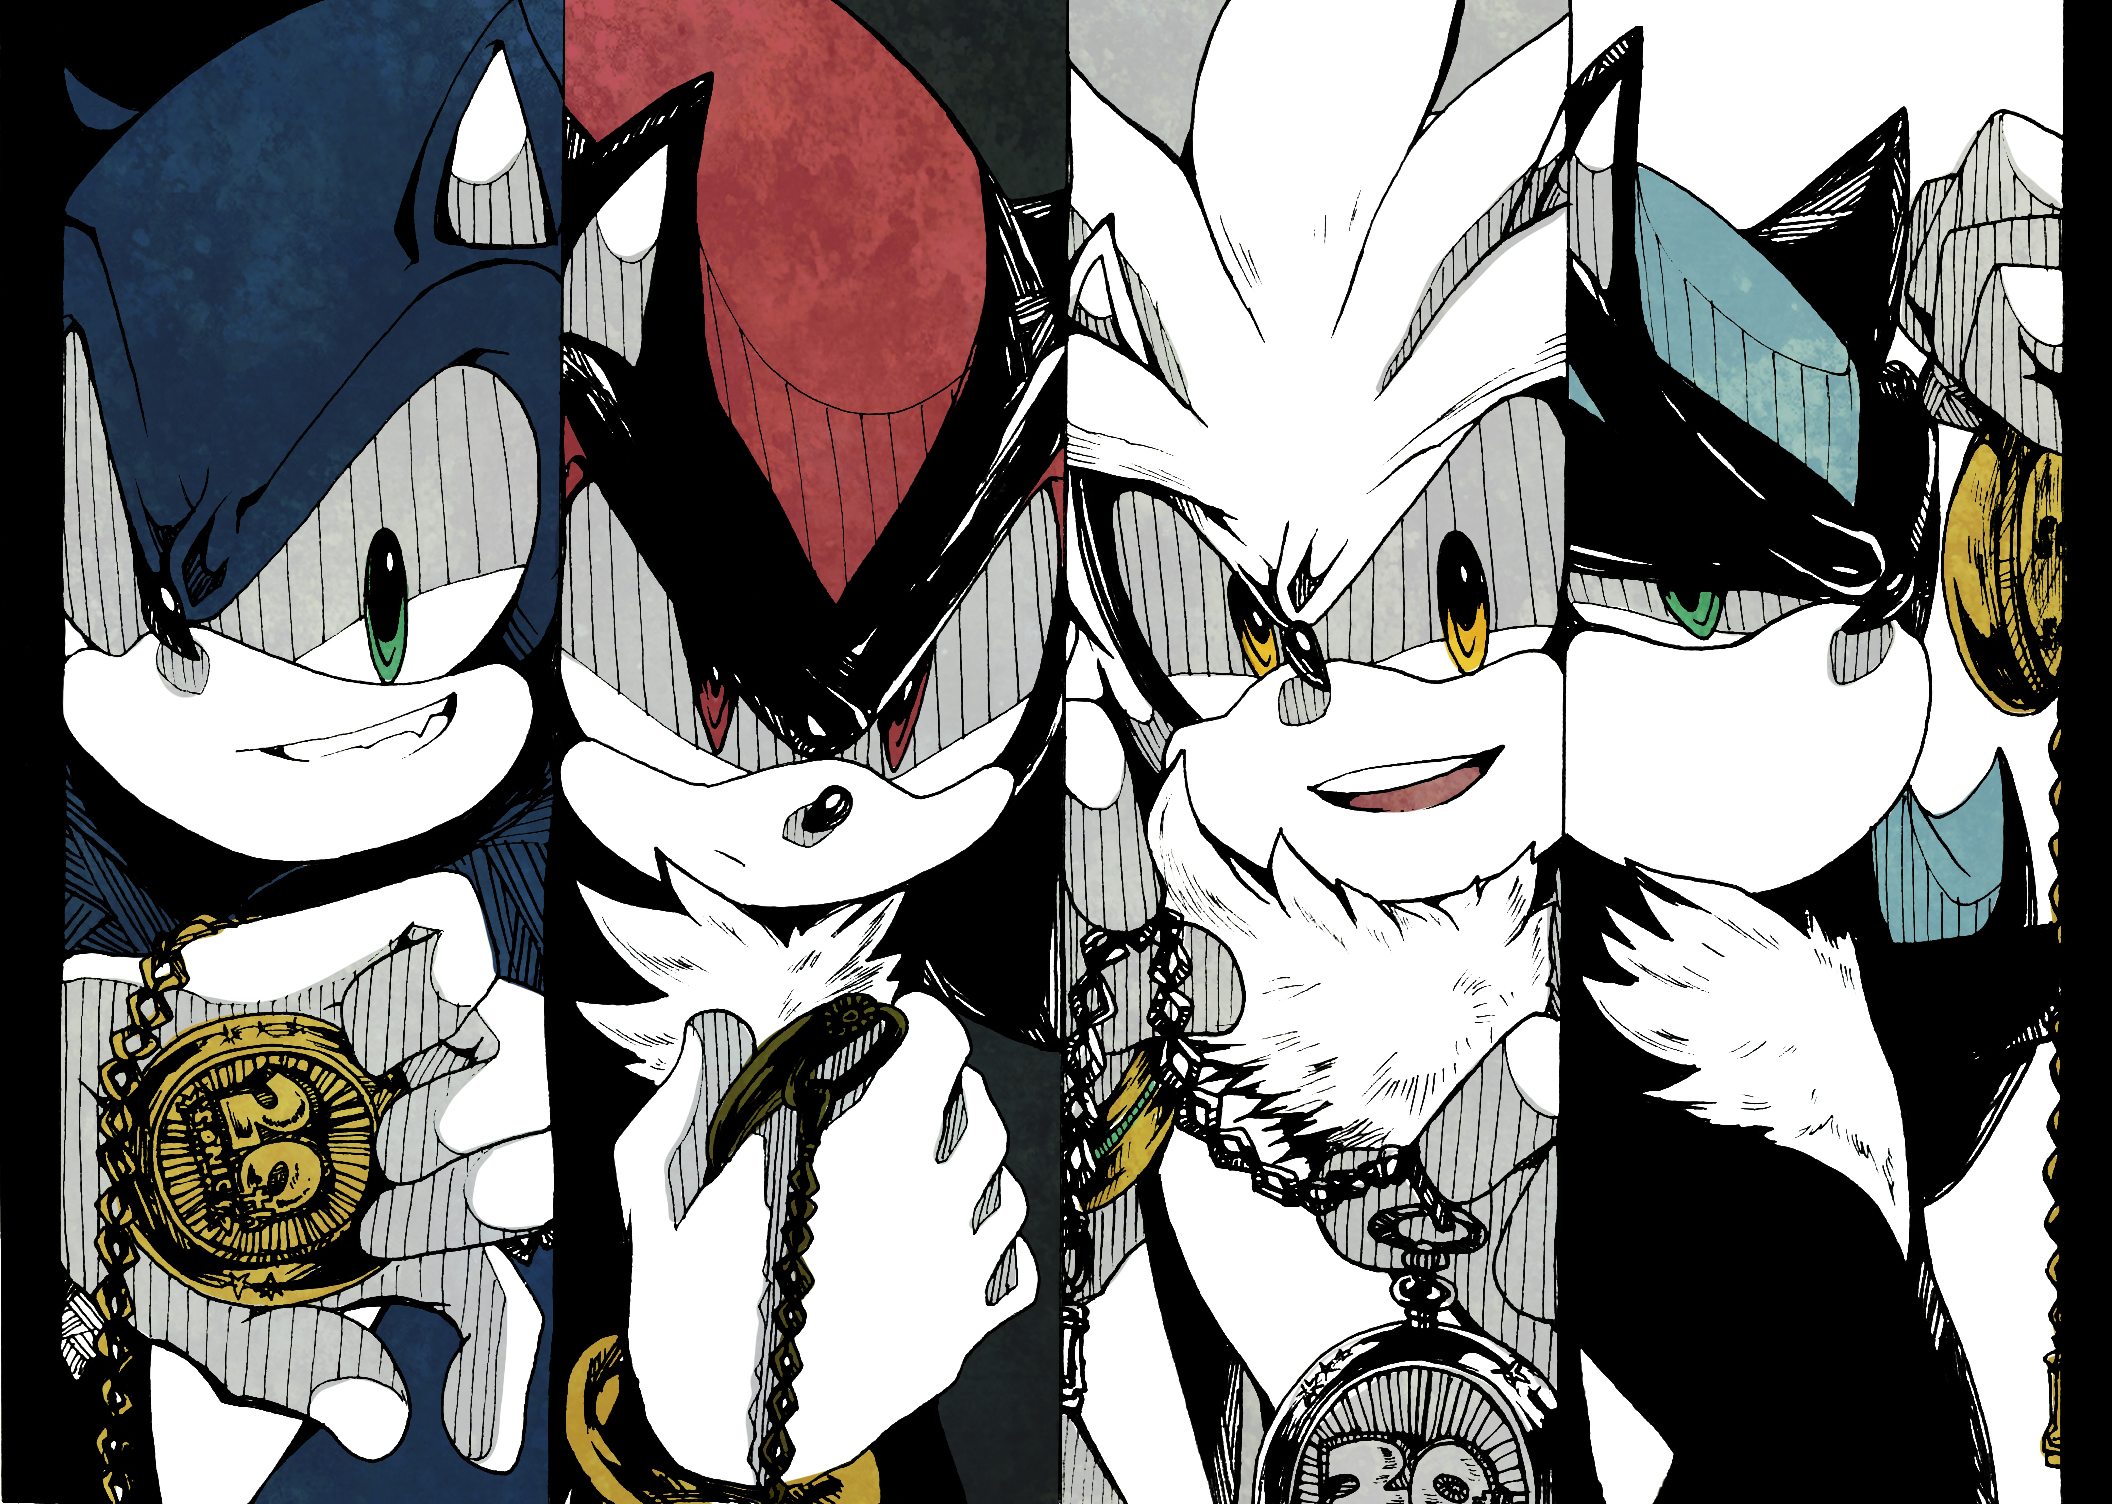 Characters Images Silver Pigstruction: Sonic The Hedgehog Image #1501299